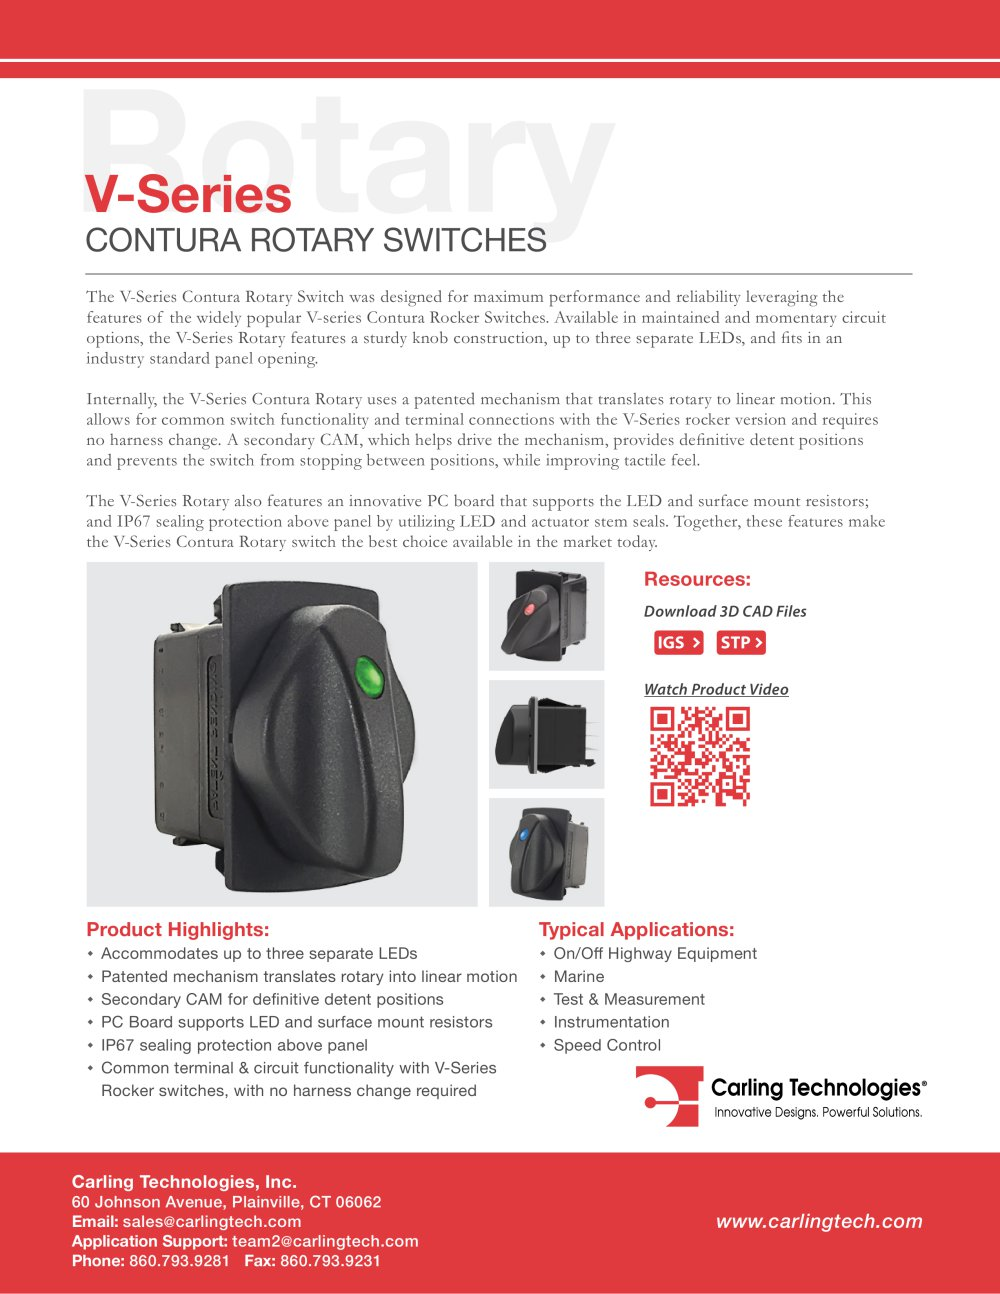 V Series Rotary Carling Technologies Pdf Catalogue Technical Uses Of Circuit 1 10 Pages